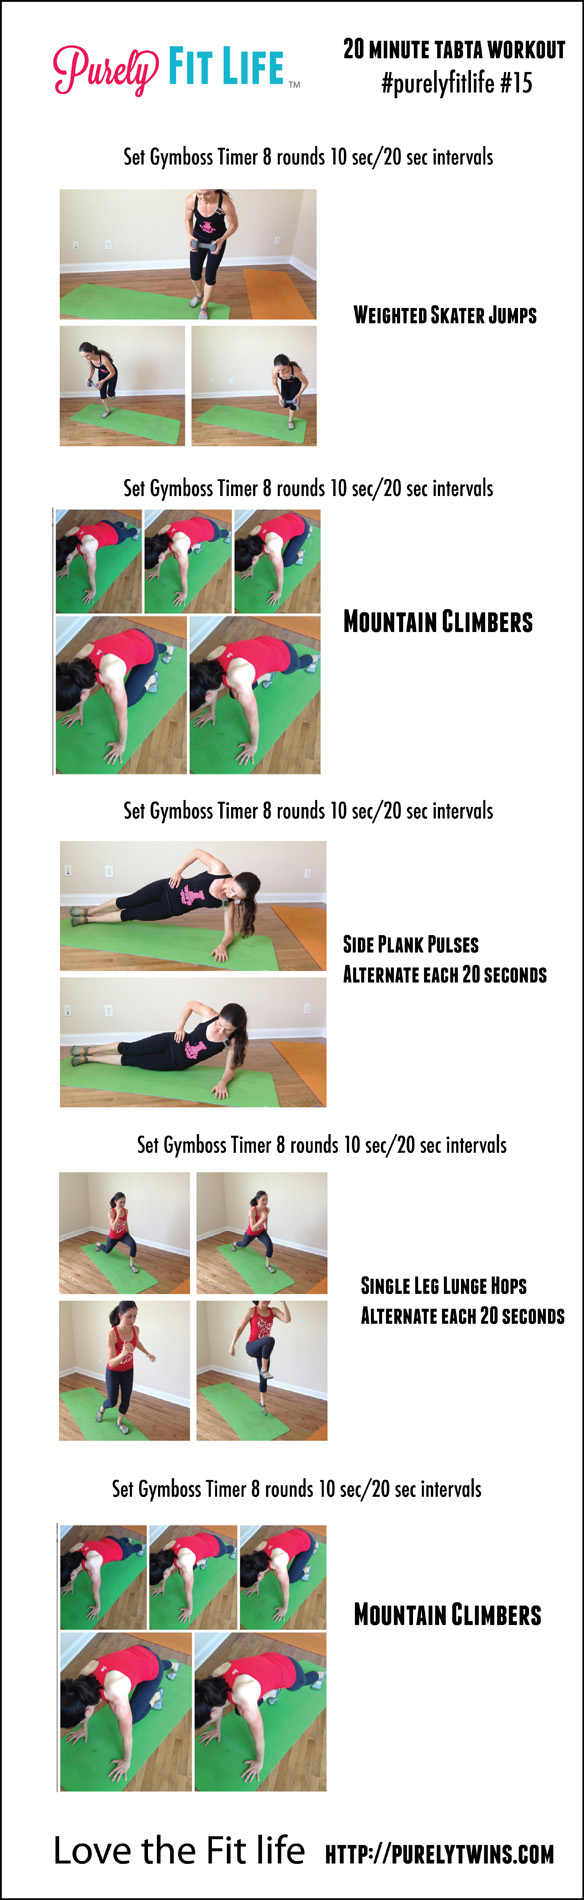 Do you need a quick, effective workout you can do from home? Try this 20 Minute Tabata Workout to get fit from just about anywhere. Beats an hour on the treadmill. Home workout for women to get in shape at home!